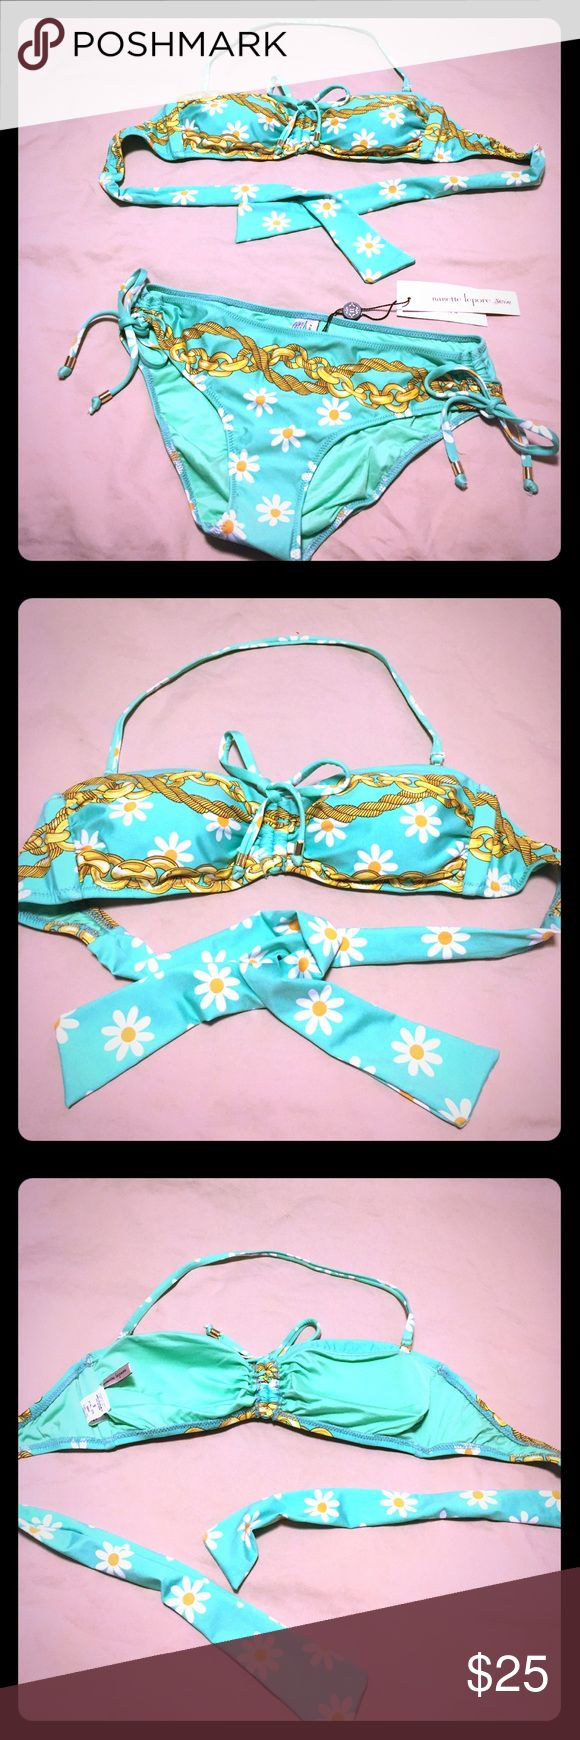 Gorgeous bikini! NWT Nanette Lepore bikini! Beautiful mint green color with floral design. Removable padding. Very well made. Amazing deal! Nanette Lepore Swim Bikinis